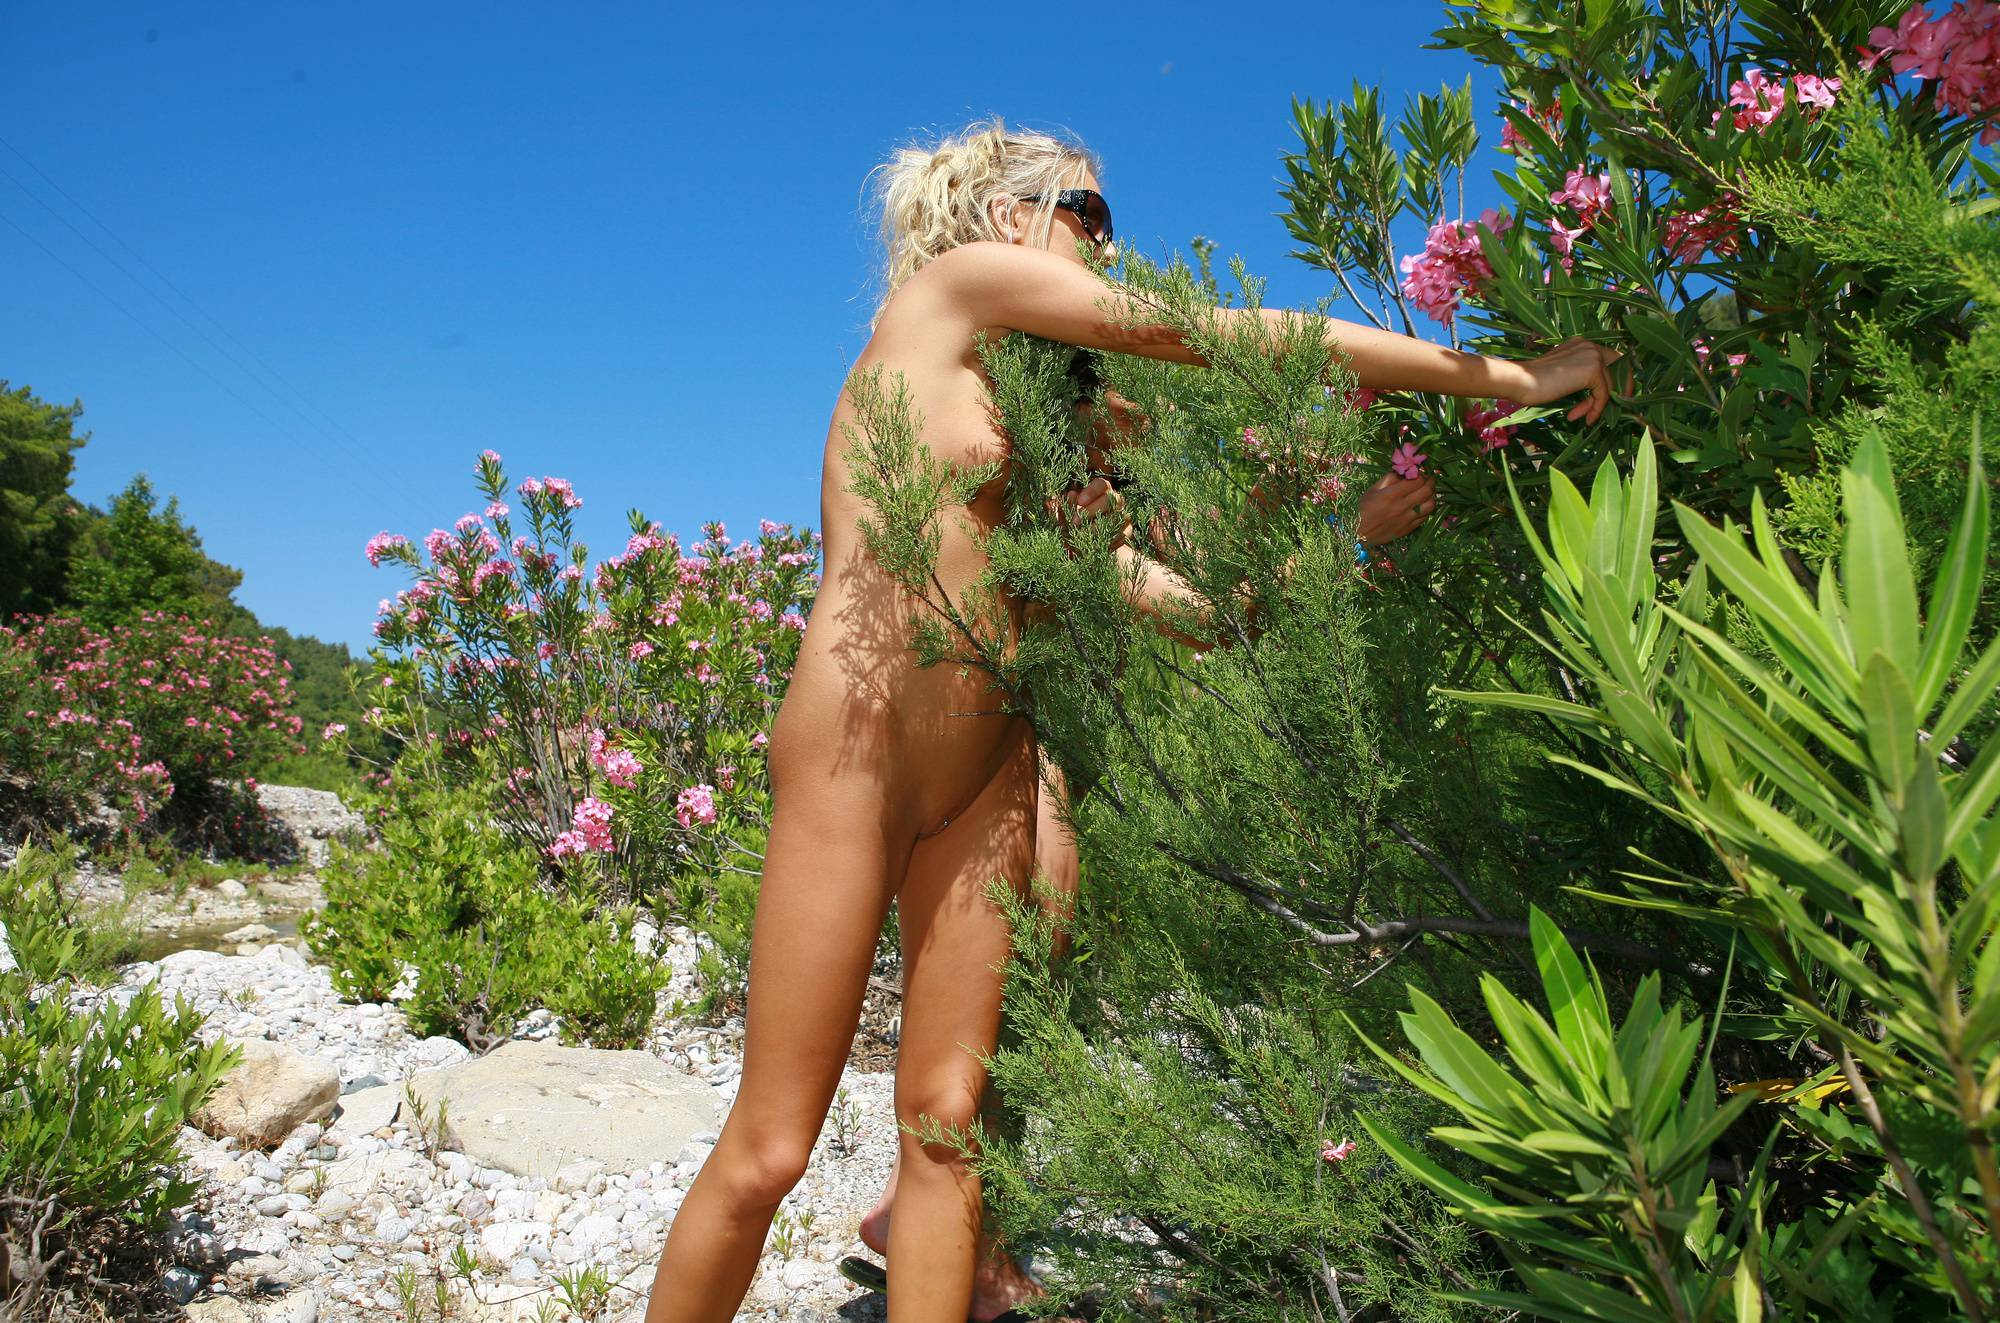 Nudist Pictures Greek Flowery Hill Top - 2